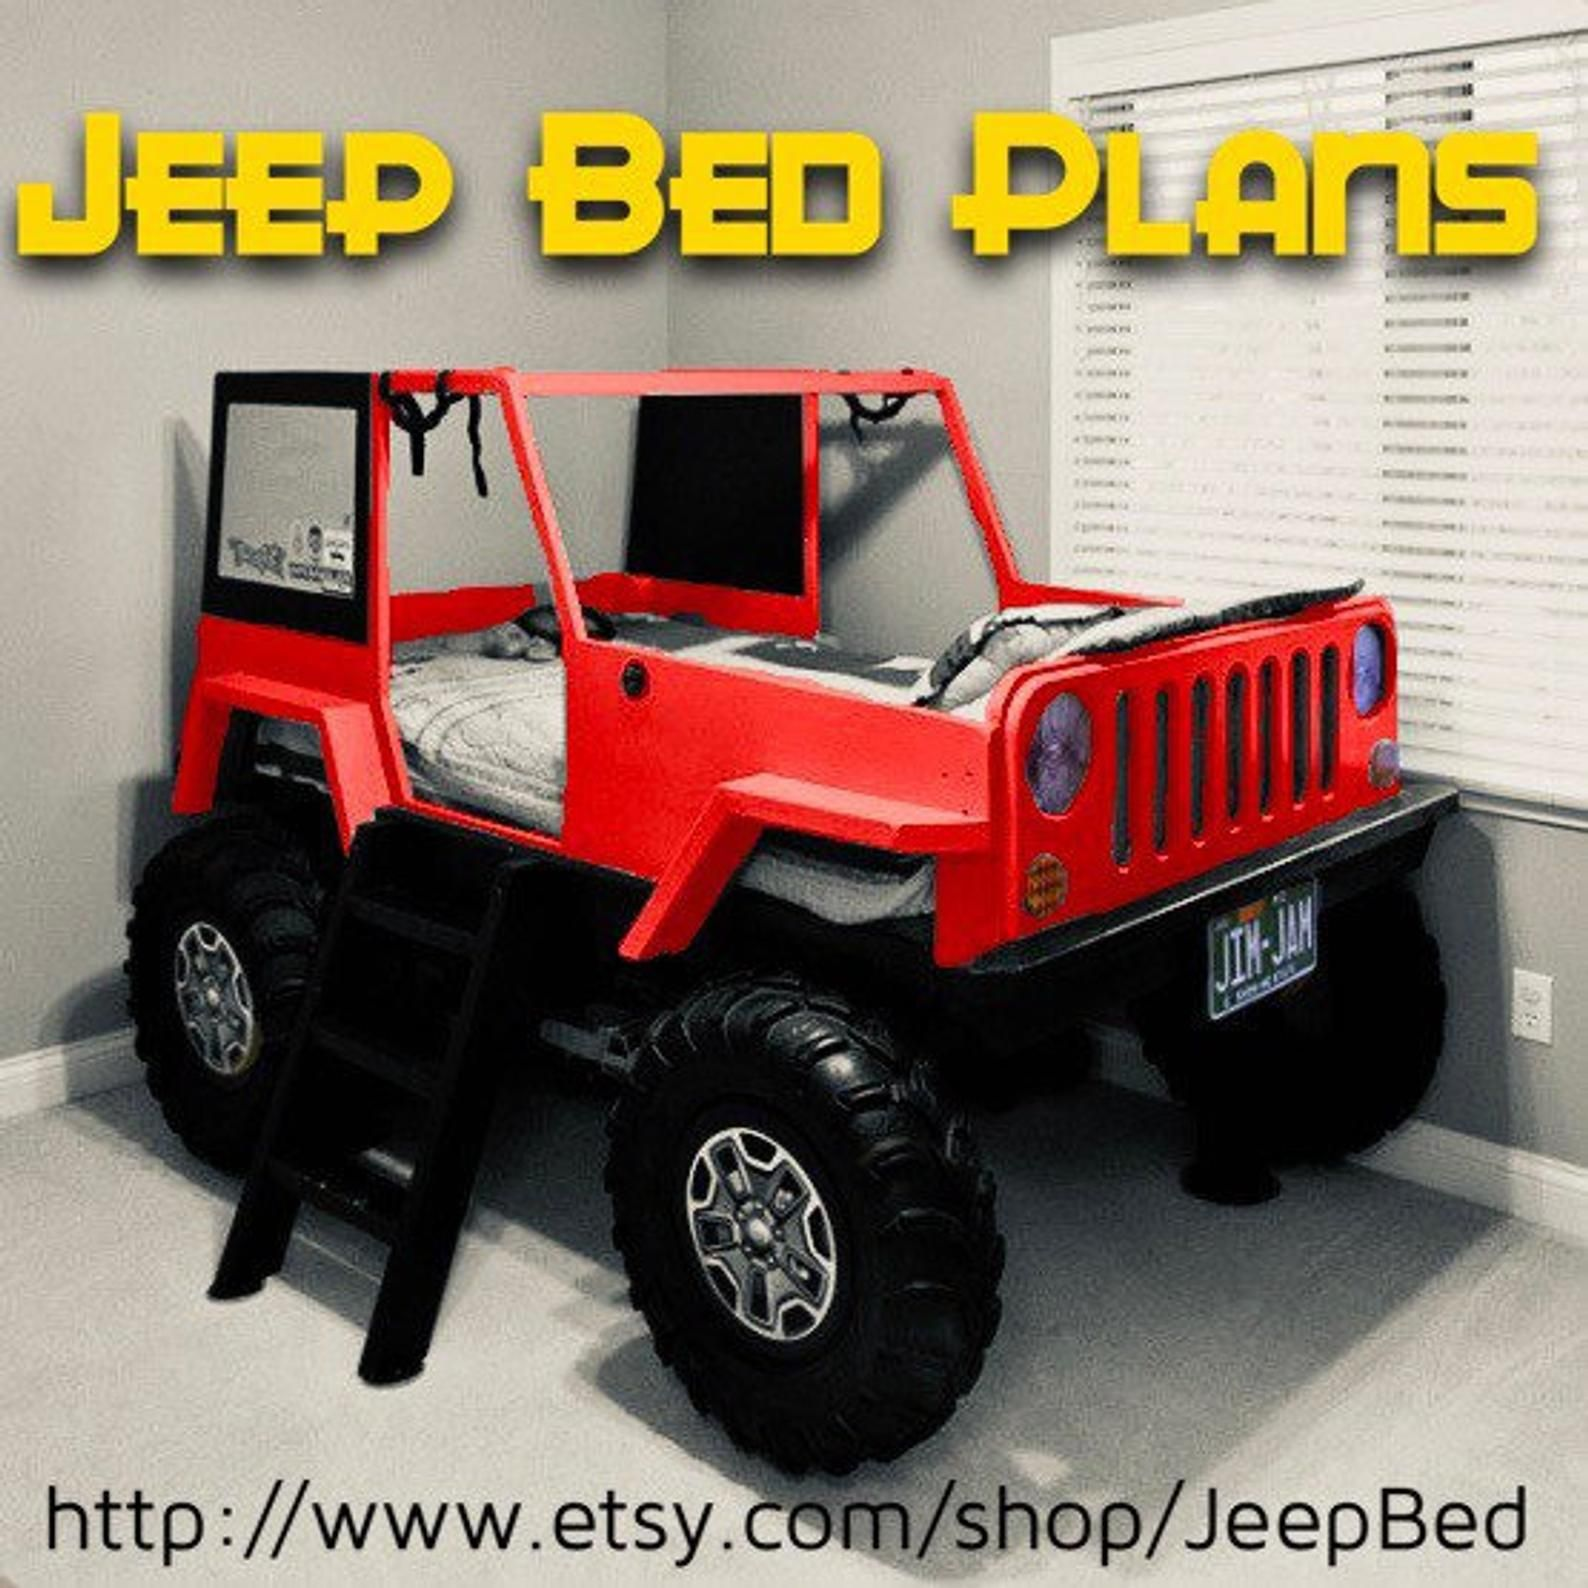 Car Bed Plans Jeep Twin Size Car Bed Jeep bed, Car bed